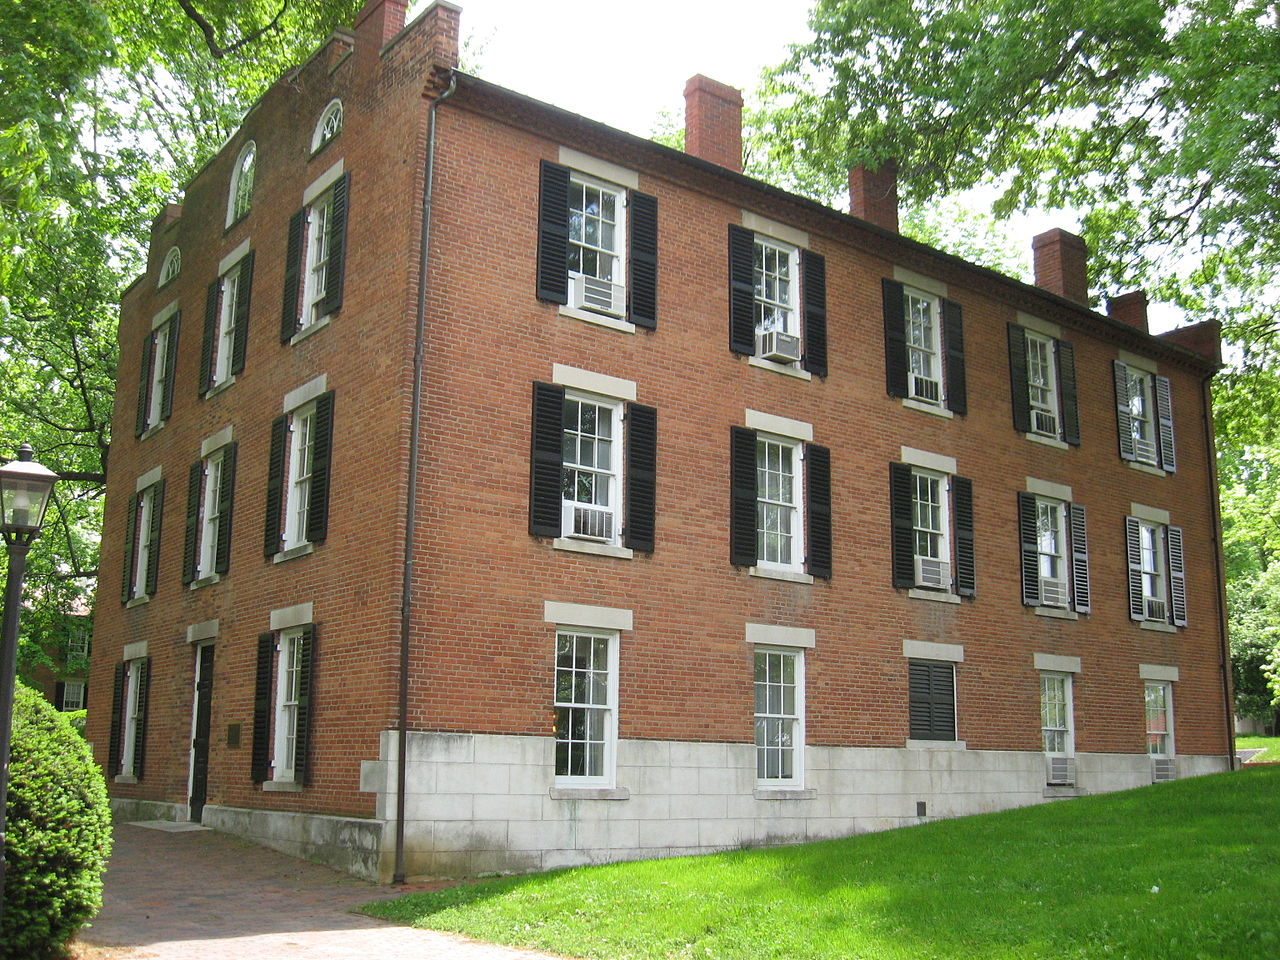 McGuffey Hall at Ohio University - Courtesy Ed! via Wikimedia Commons